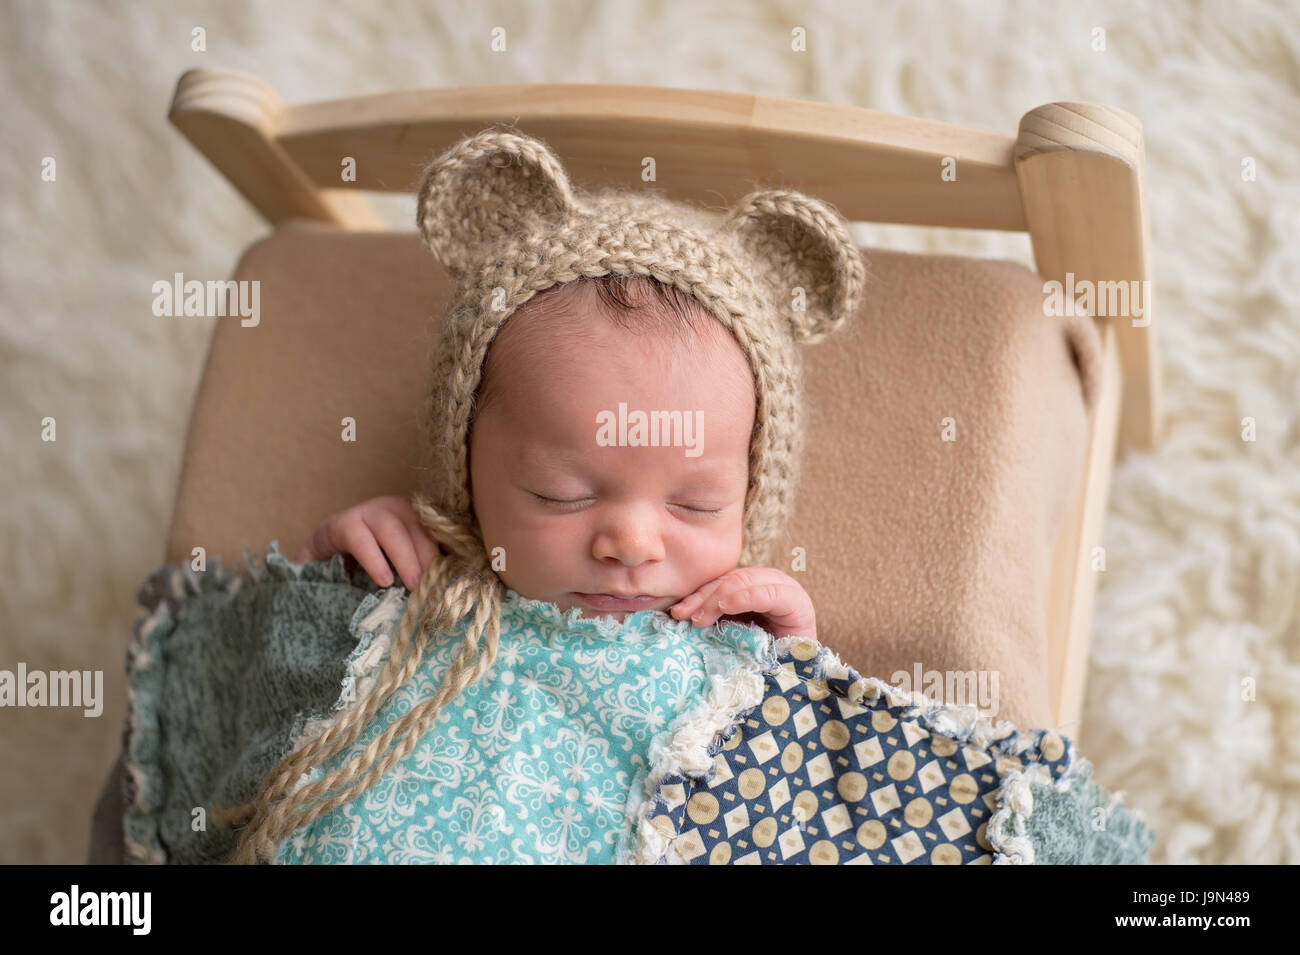 Two week old newborn baby boy wearing a tan, crocheted, bear bonnet. He is  sleeping on a tiny, wooden bed and covered with a blue quilt. 4dfb0960369